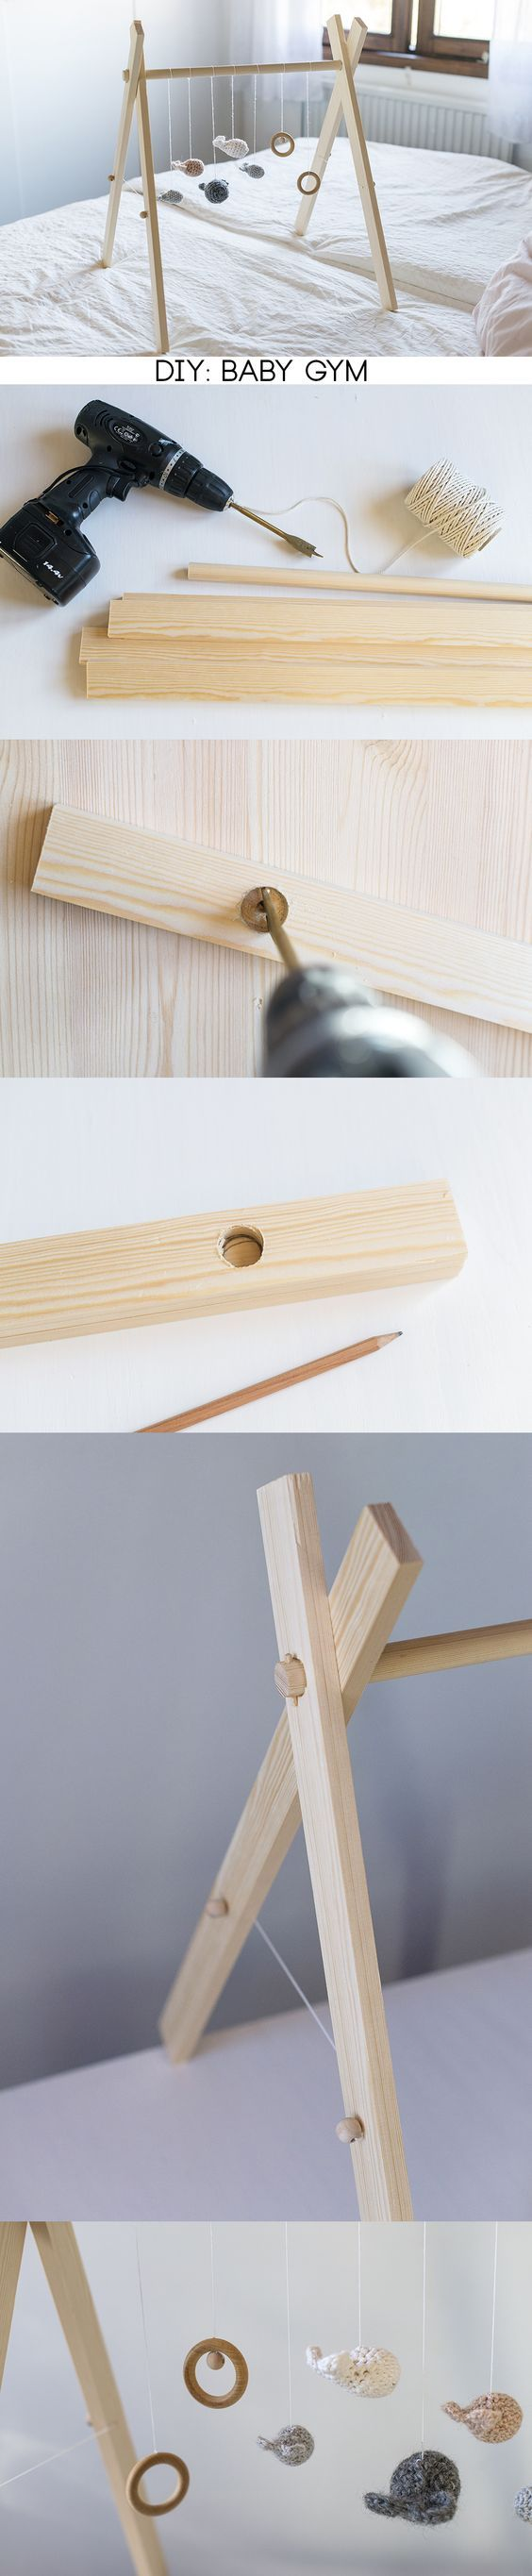 arche pour bebe faire soi m me diy tutos portique de jeu diy fait mains pinterest. Black Bedroom Furniture Sets. Home Design Ideas